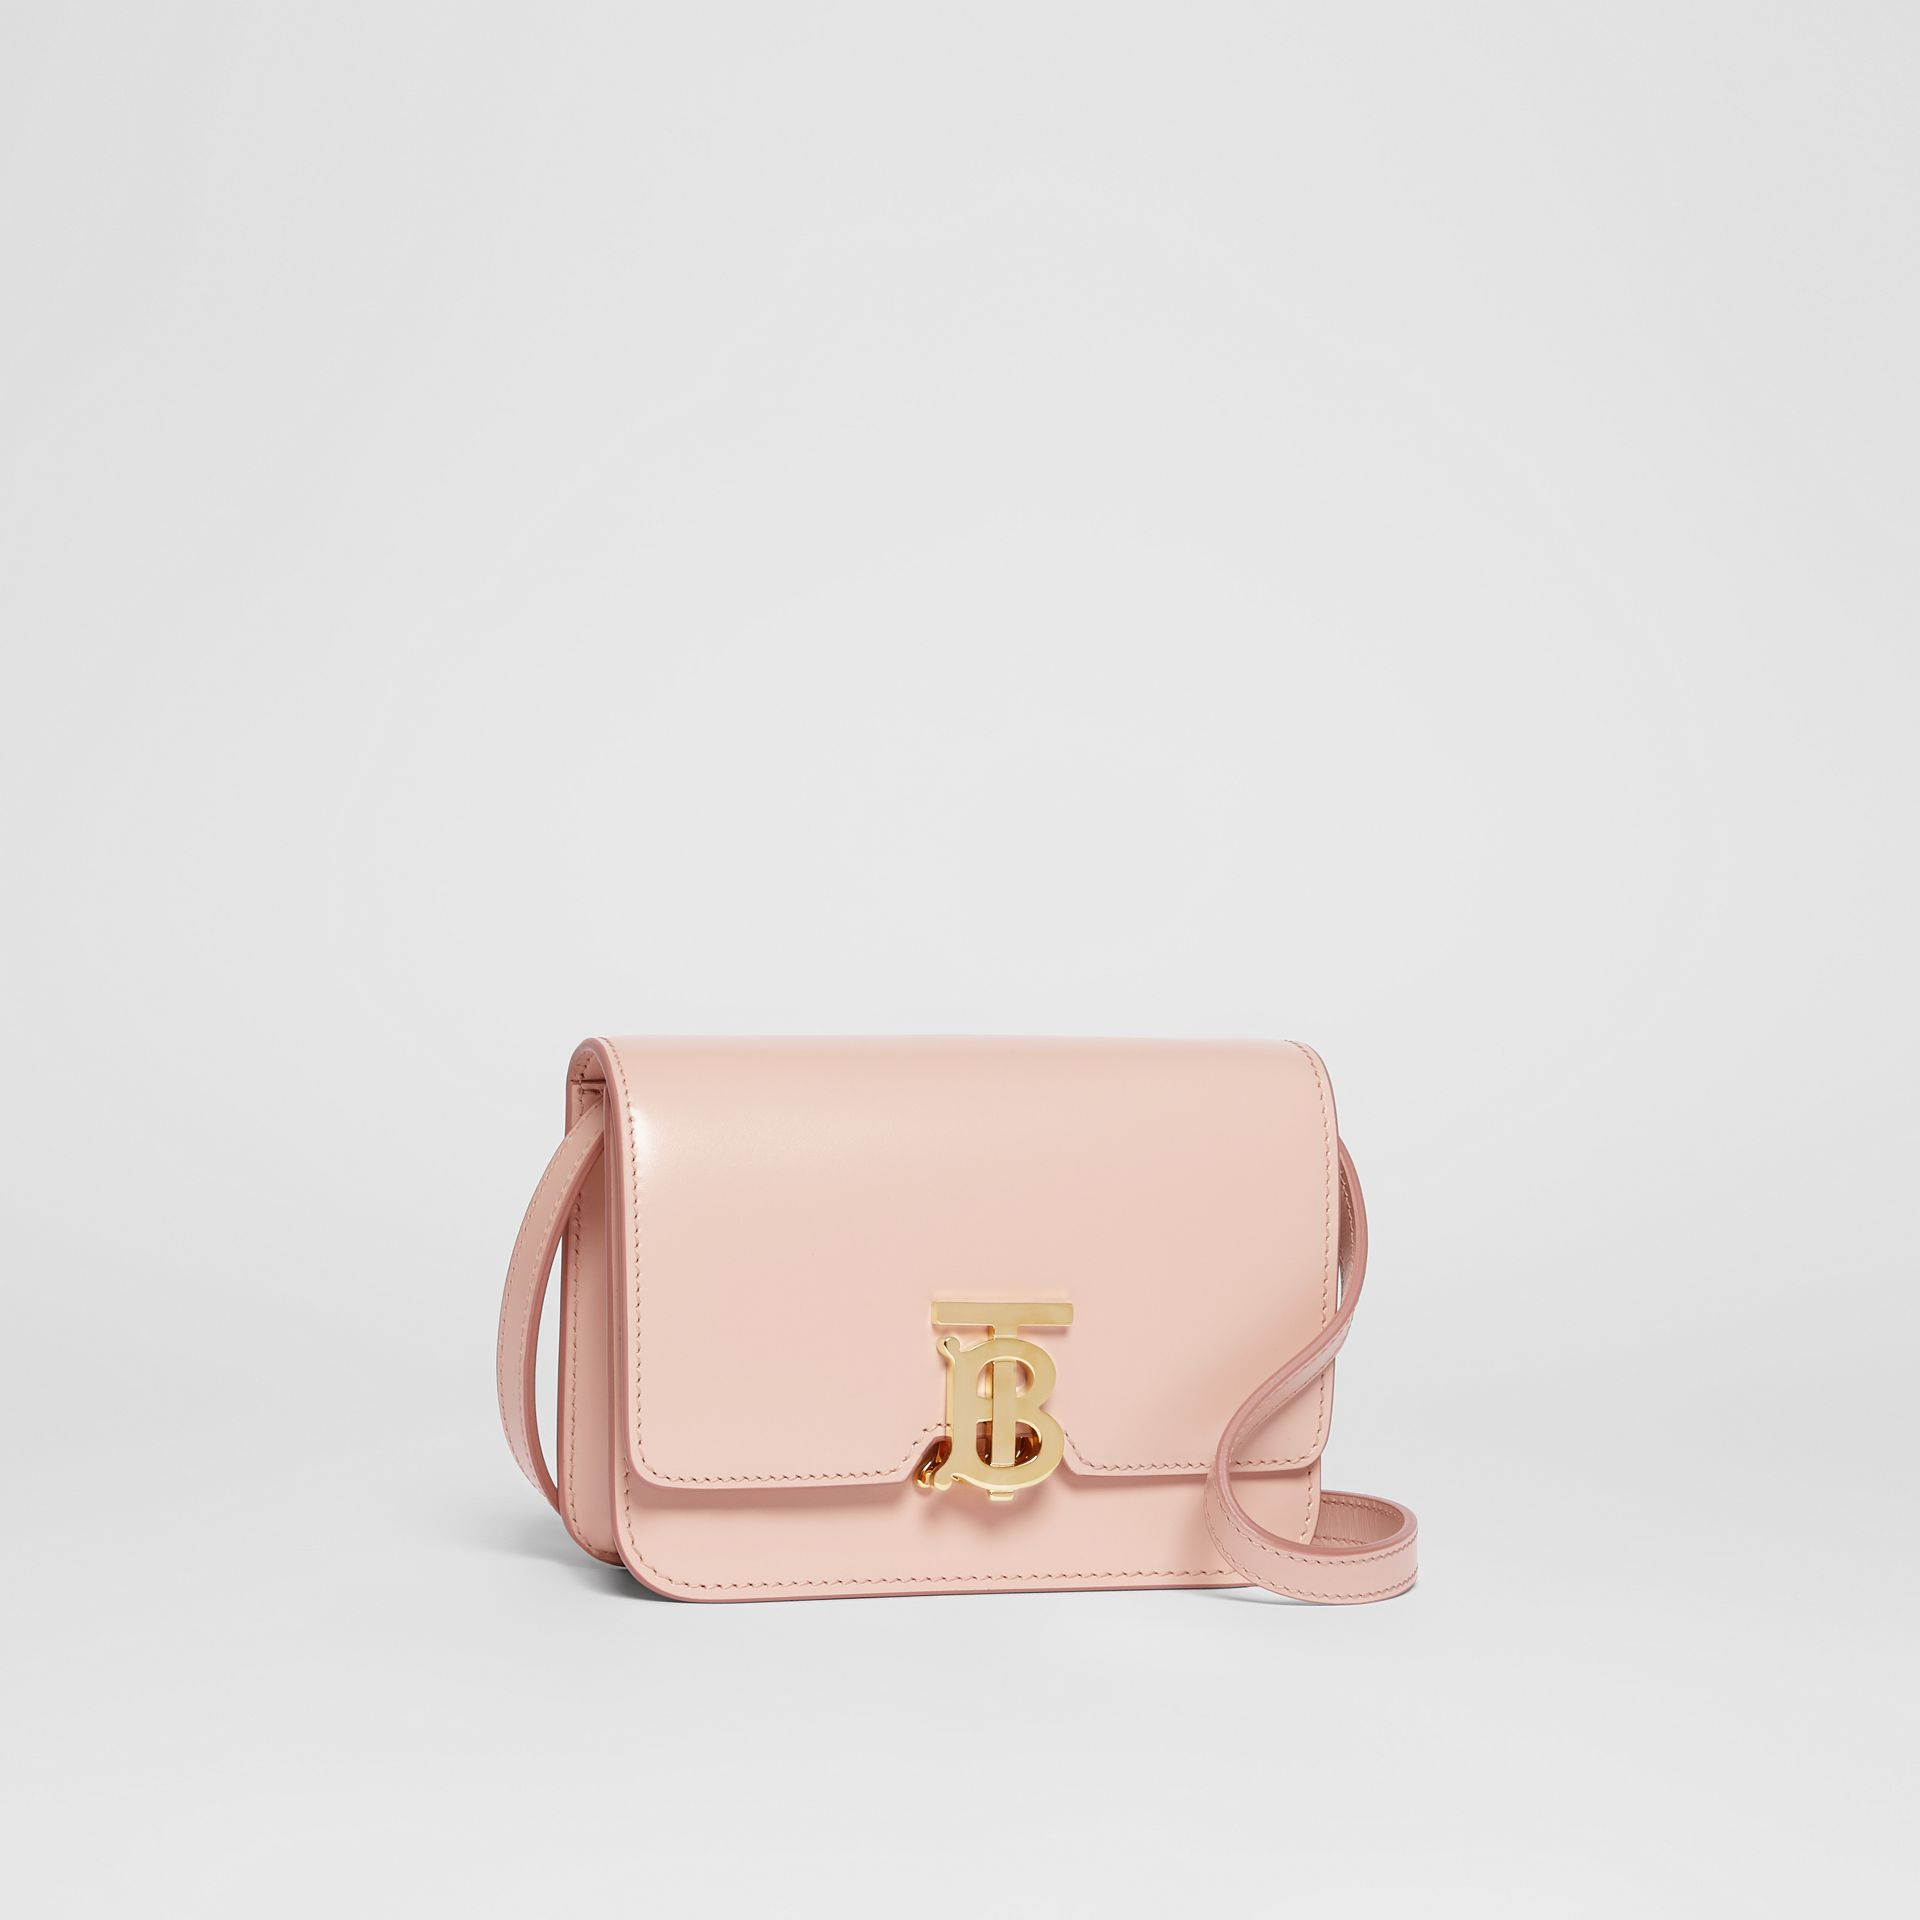 Mini Leather TB Bag in Rose Beige - Women | Burberry Canada - gallery image 6